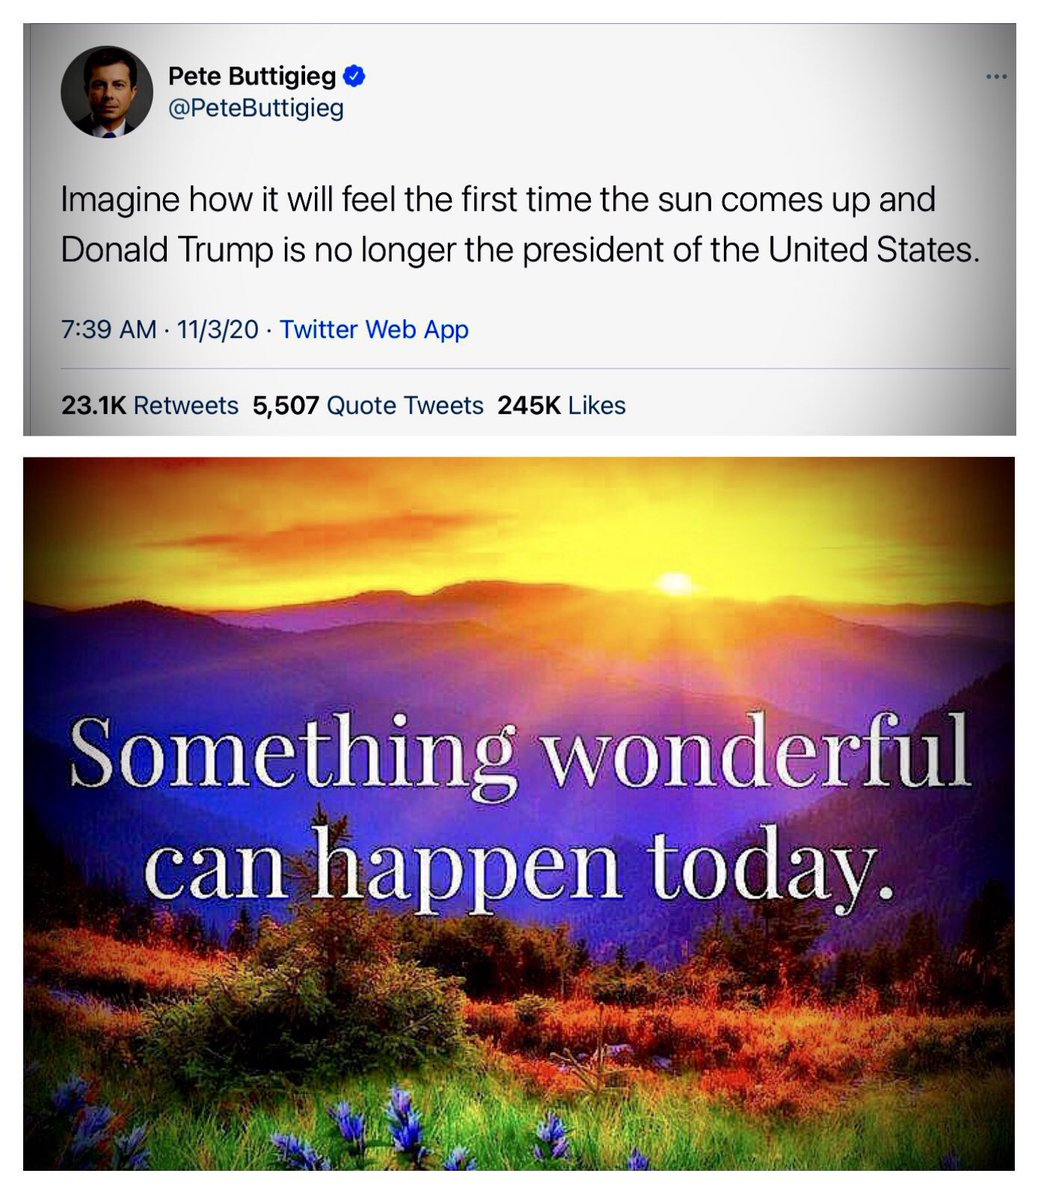 """@MaryLTrump ✨""""Imagine how it will feel the first time the sun 🌞 comes up and🖕🏻#DonaldTrump 🤡🦠🇷🇺 is no longer the president of the United States.""""✨ 🇺🇸😎👍🏻 ~ 👏🏻💞@PeteButtigieg🌞🙋🏻♂️🇺🇸"""